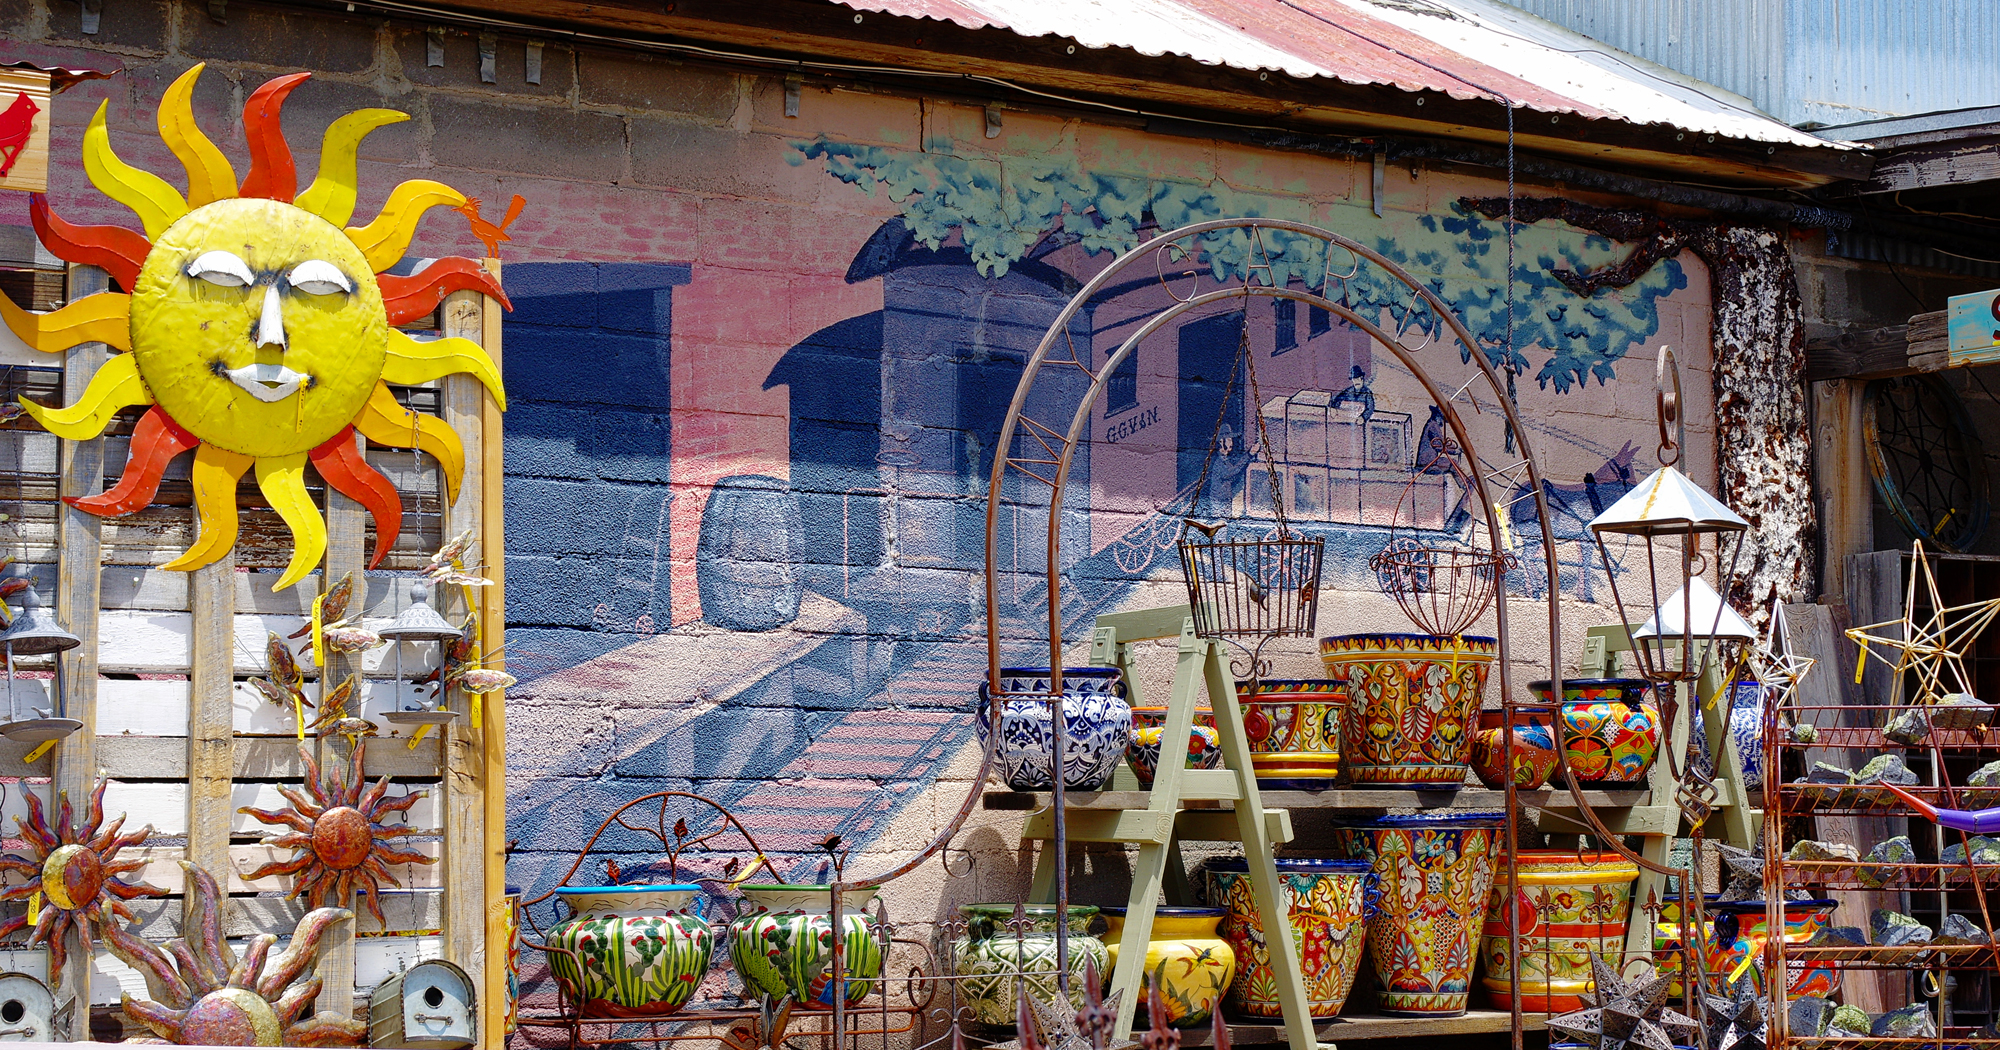 Rustic Yard Art on Exterior of Pickle Barrel Trading Post